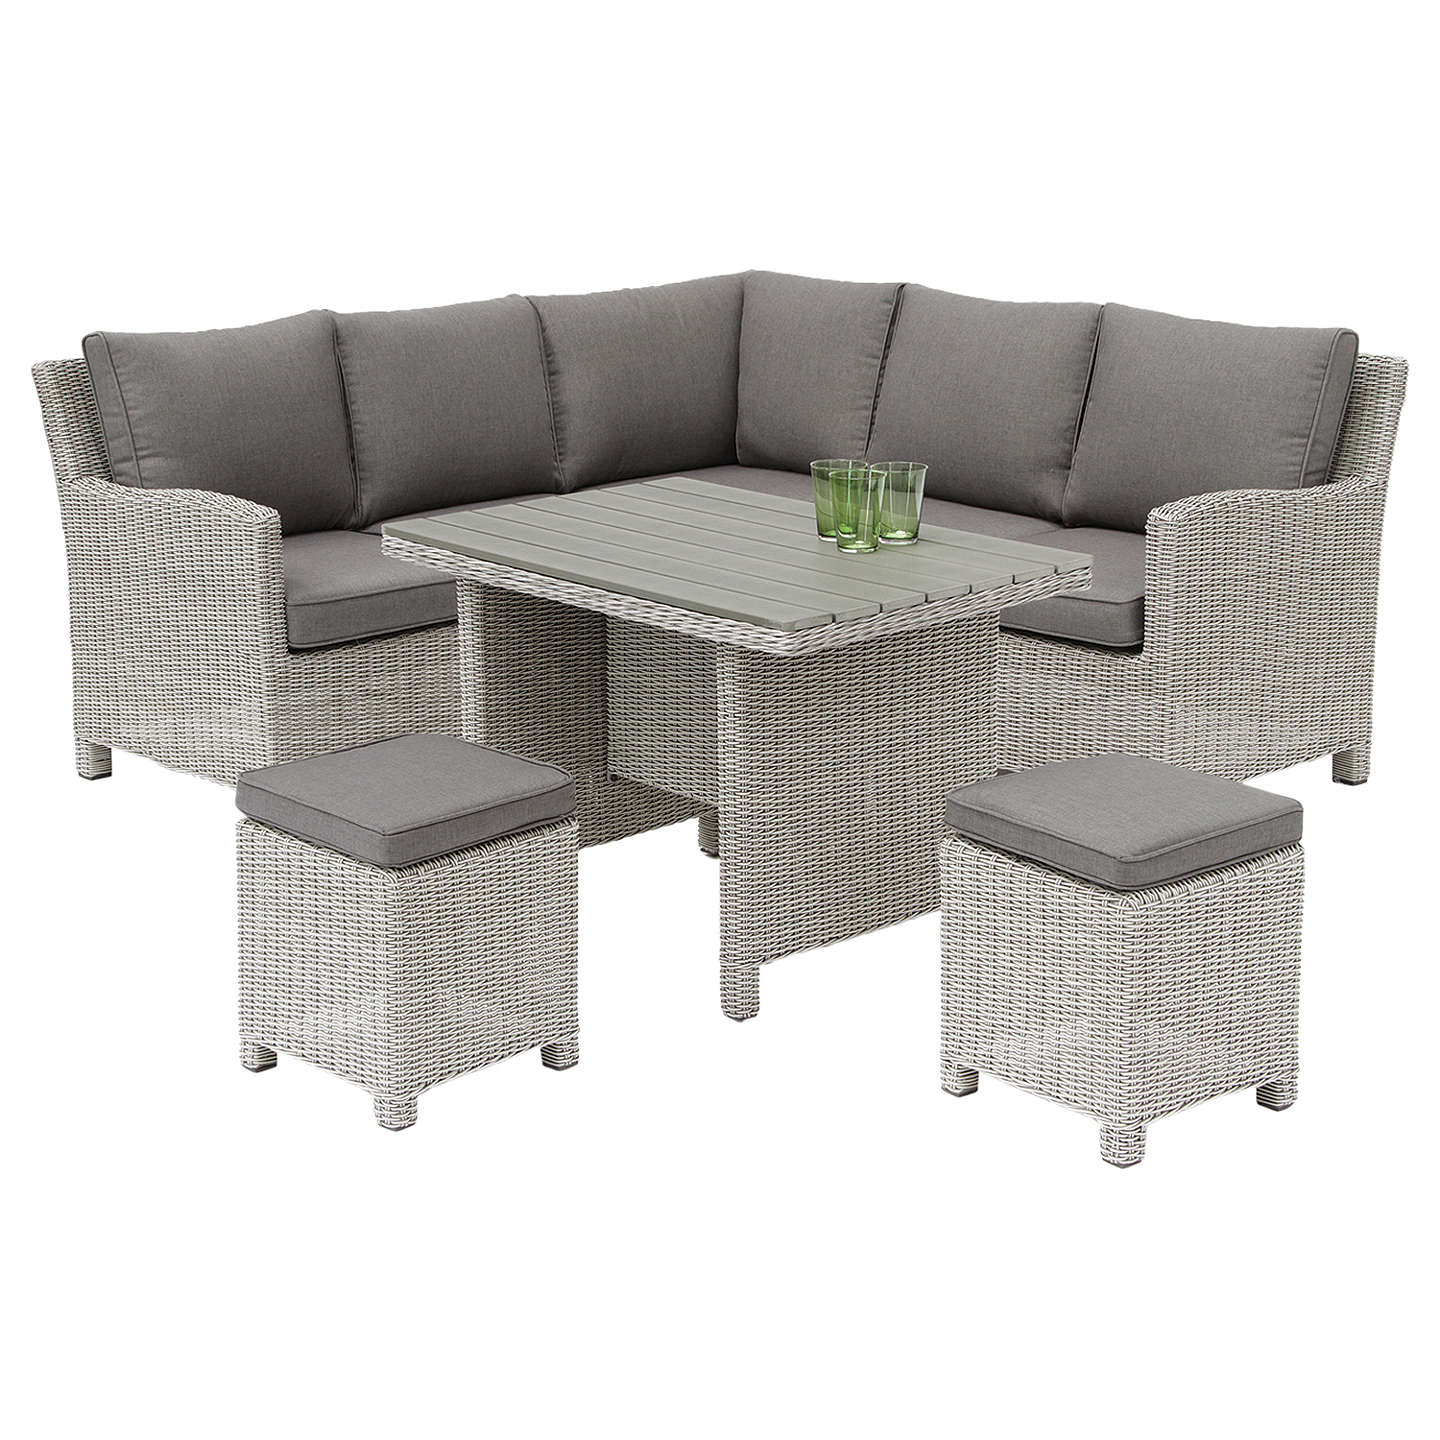 Kettler Palma 6 Seater Garden Mini Corner Table And Chairs